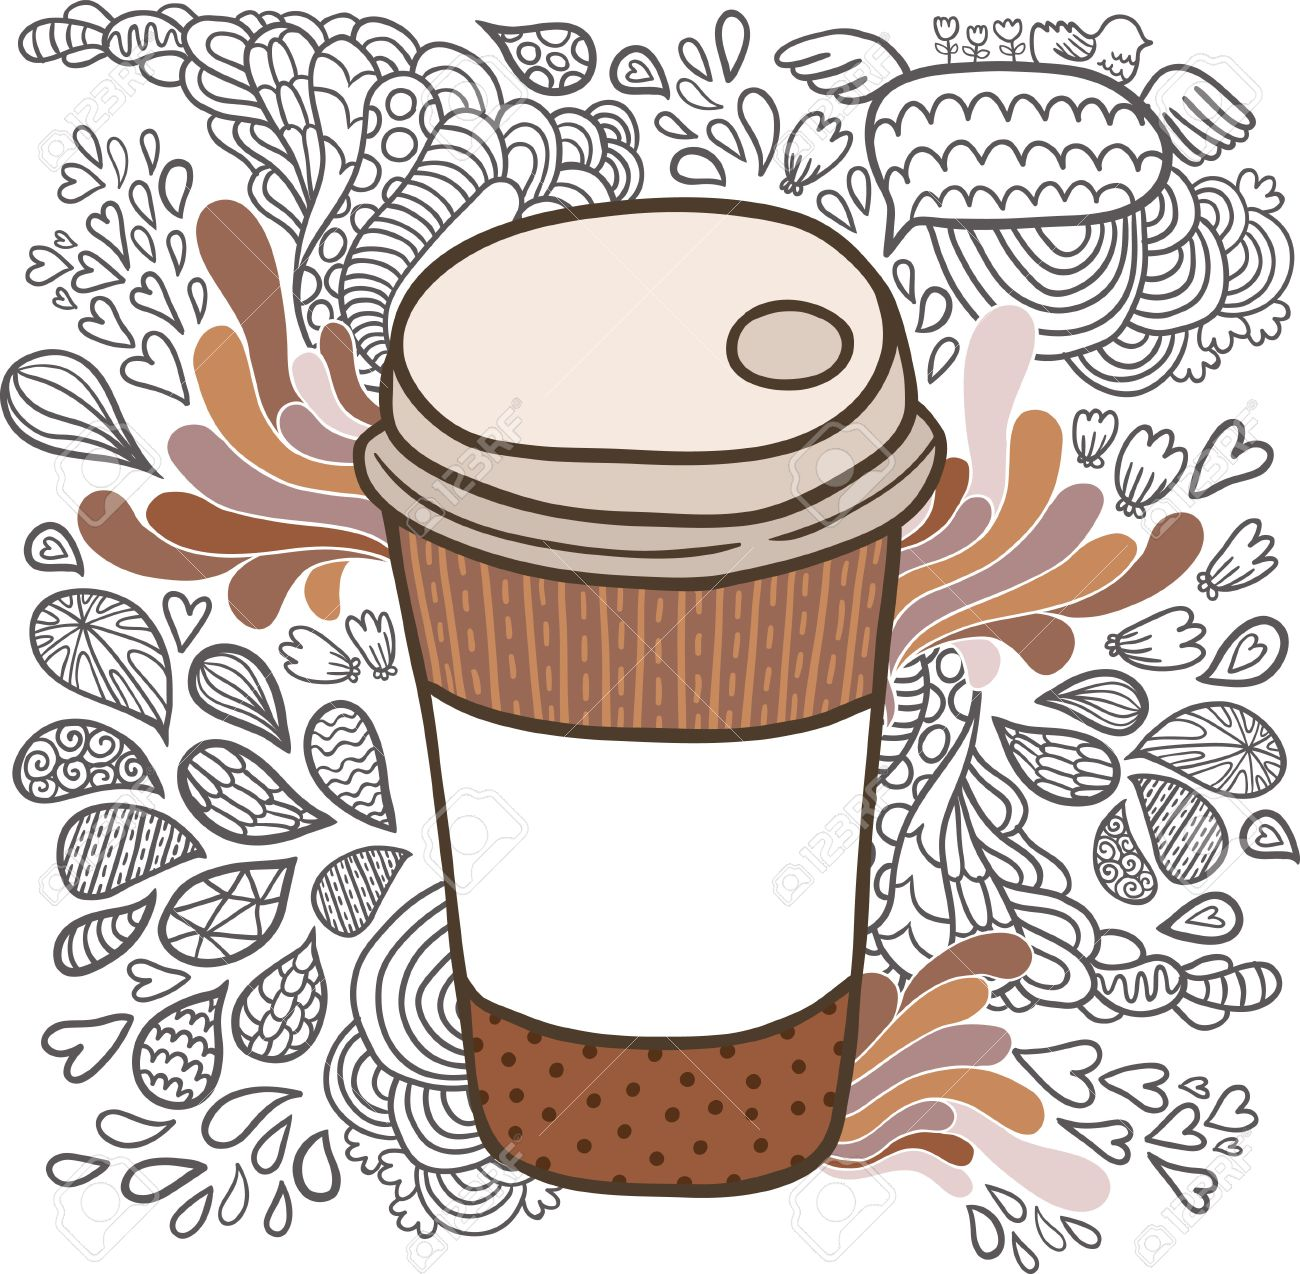 Cartoon Doodle Drawn Coffee Cute Hand Cup dWrxBCoe